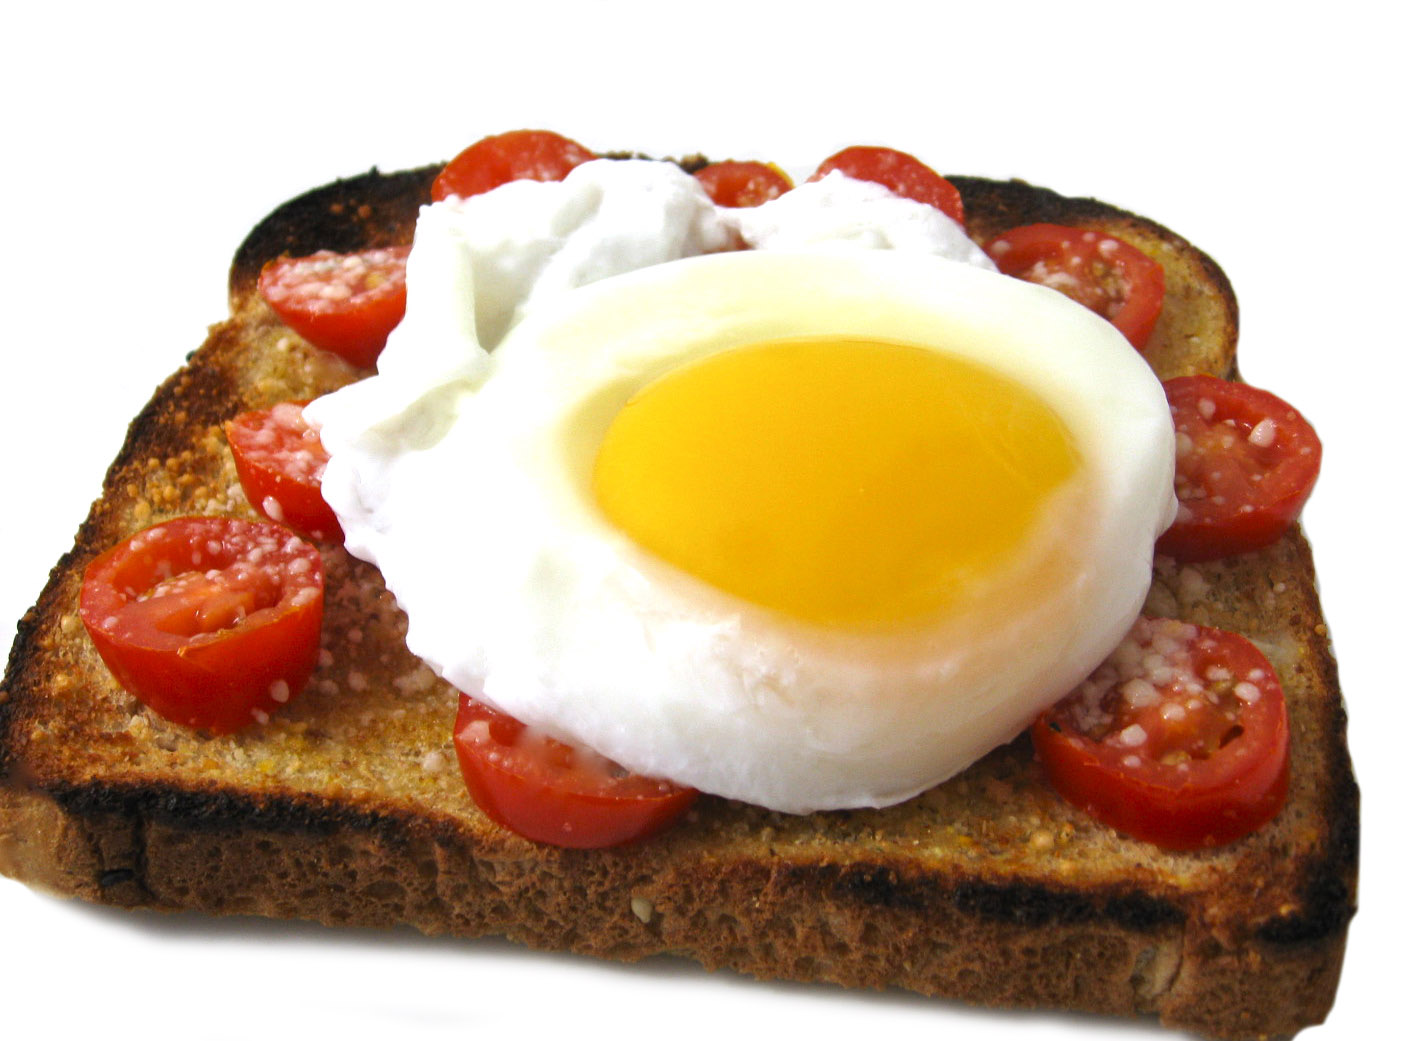 Poached Egg on Skinny Parmesan Tomato Garlic Toast